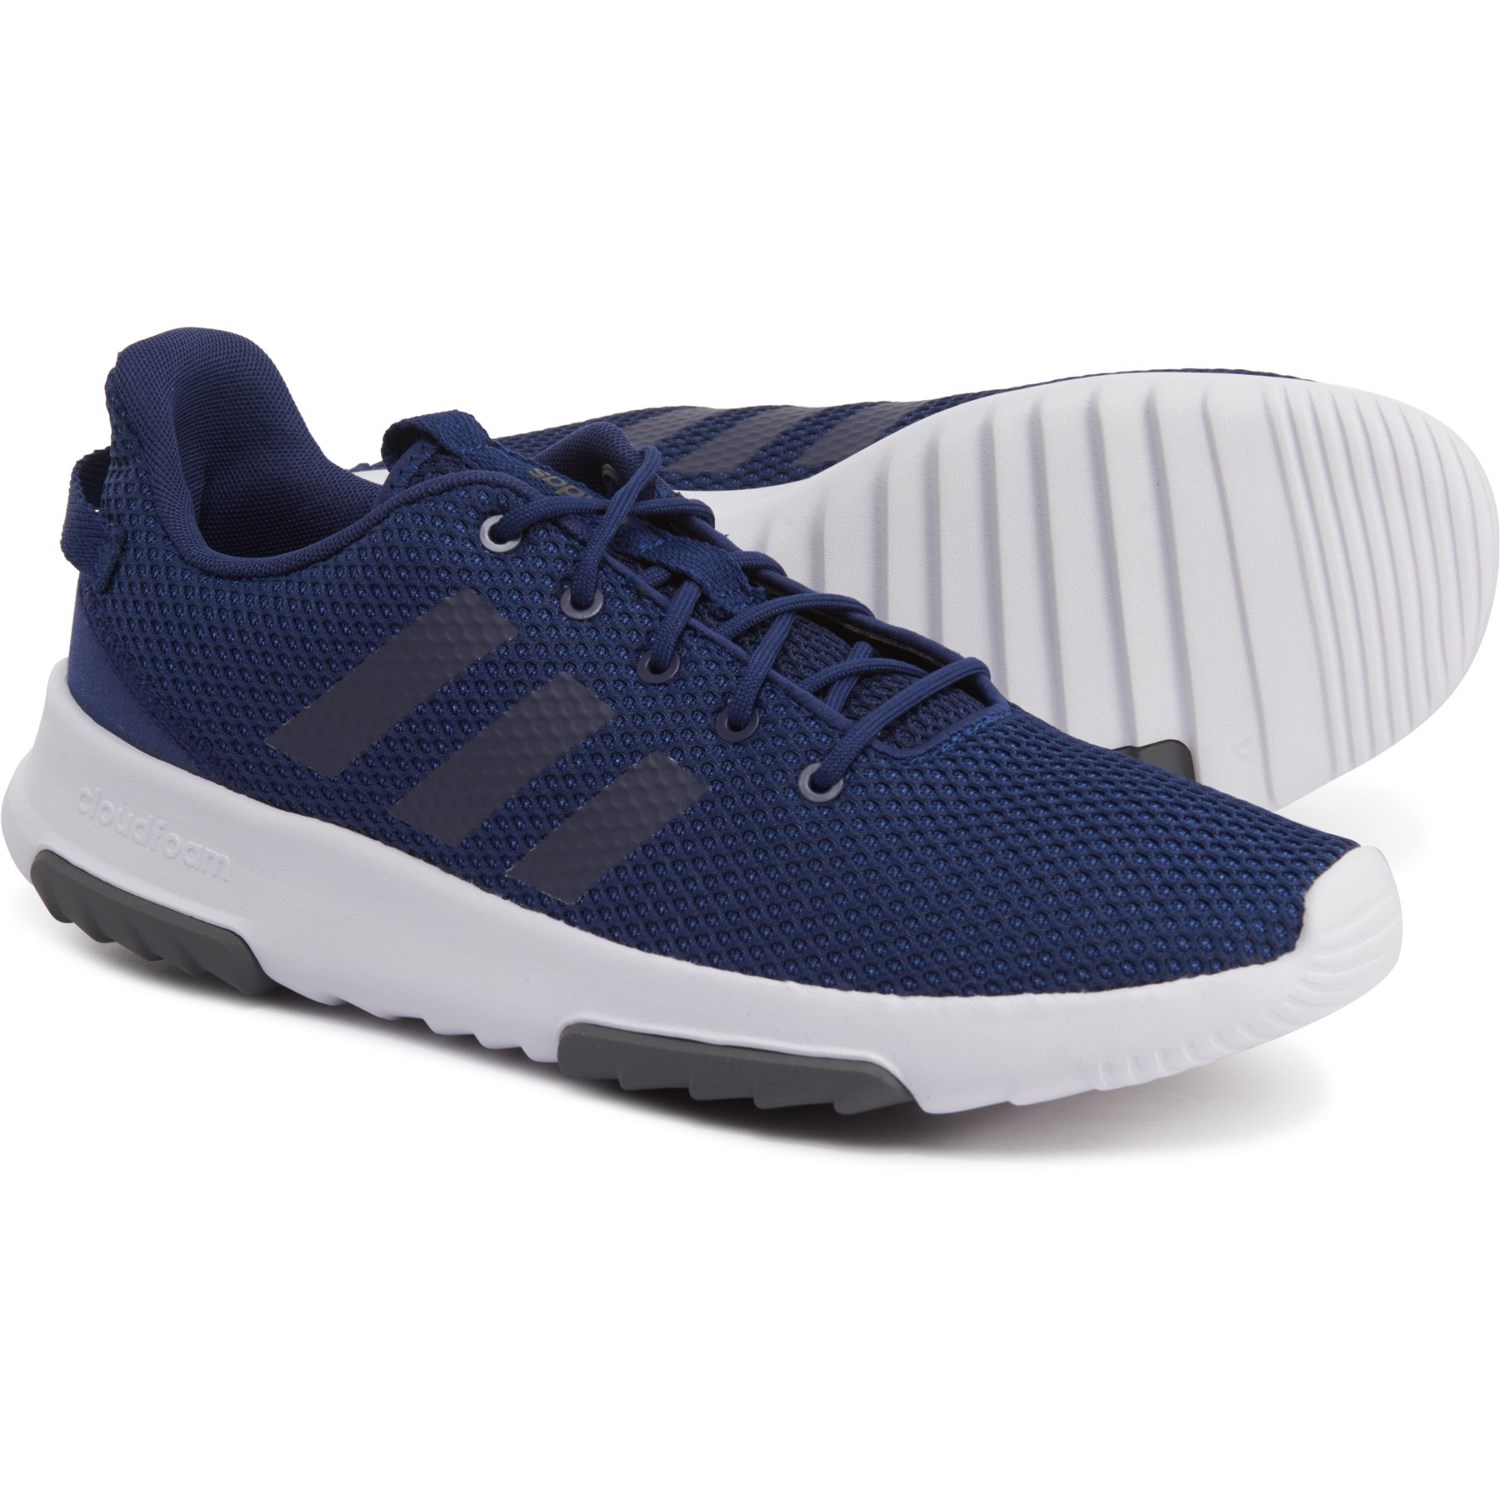 danza pánico Aprendiz  adidas Cloudfoam® Racer TR Training Shoes (For Men) - Save 27%